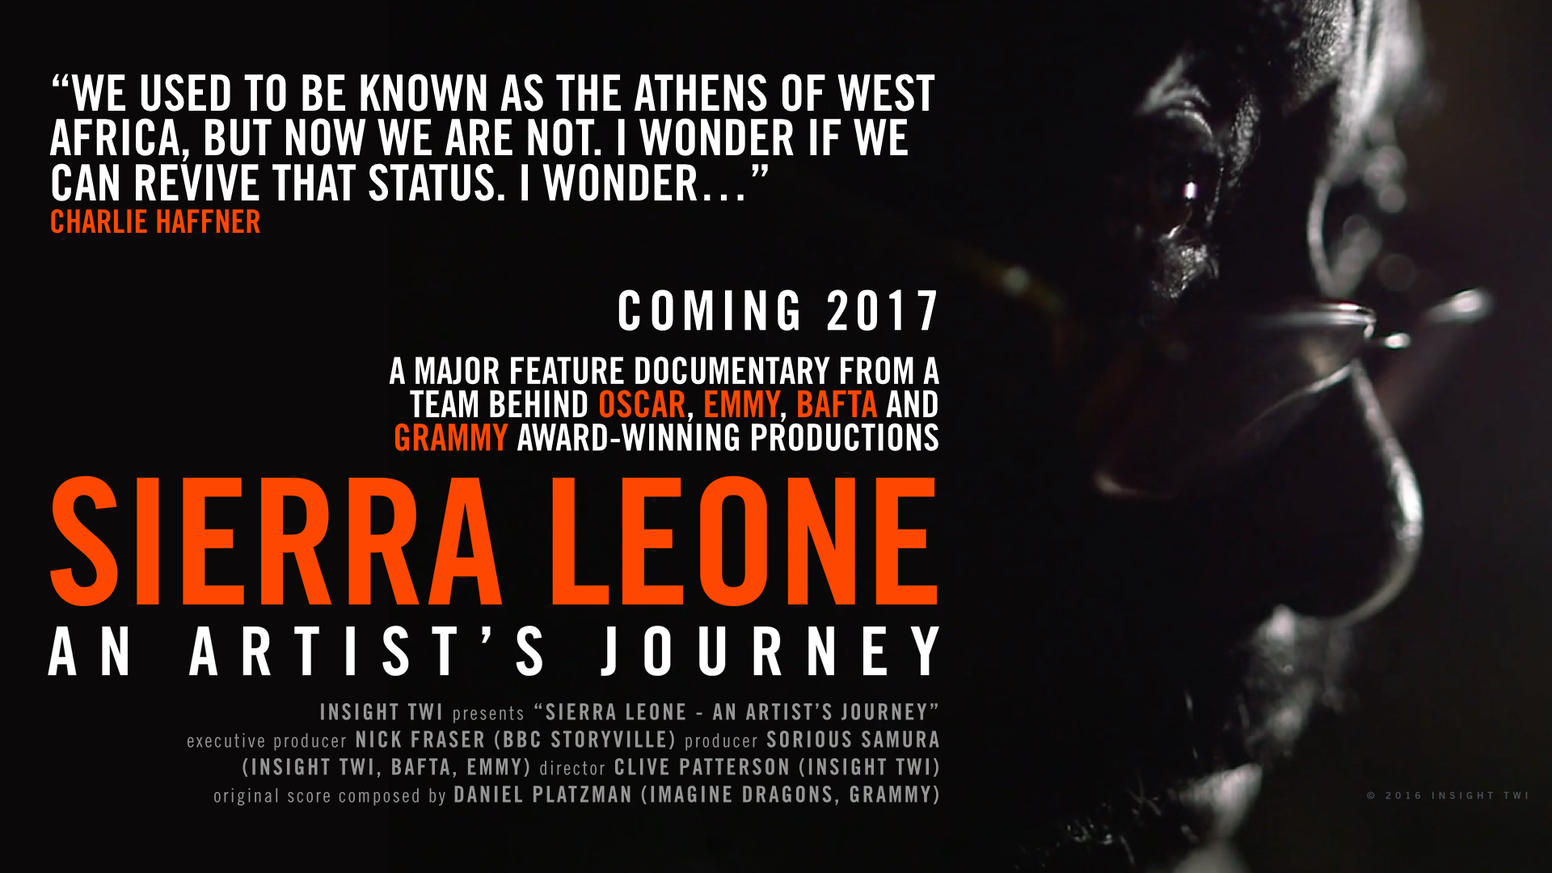 Sierra Leone: The Film is the inspiring story of a celebrated playwright and his mission to change his nation with great art.